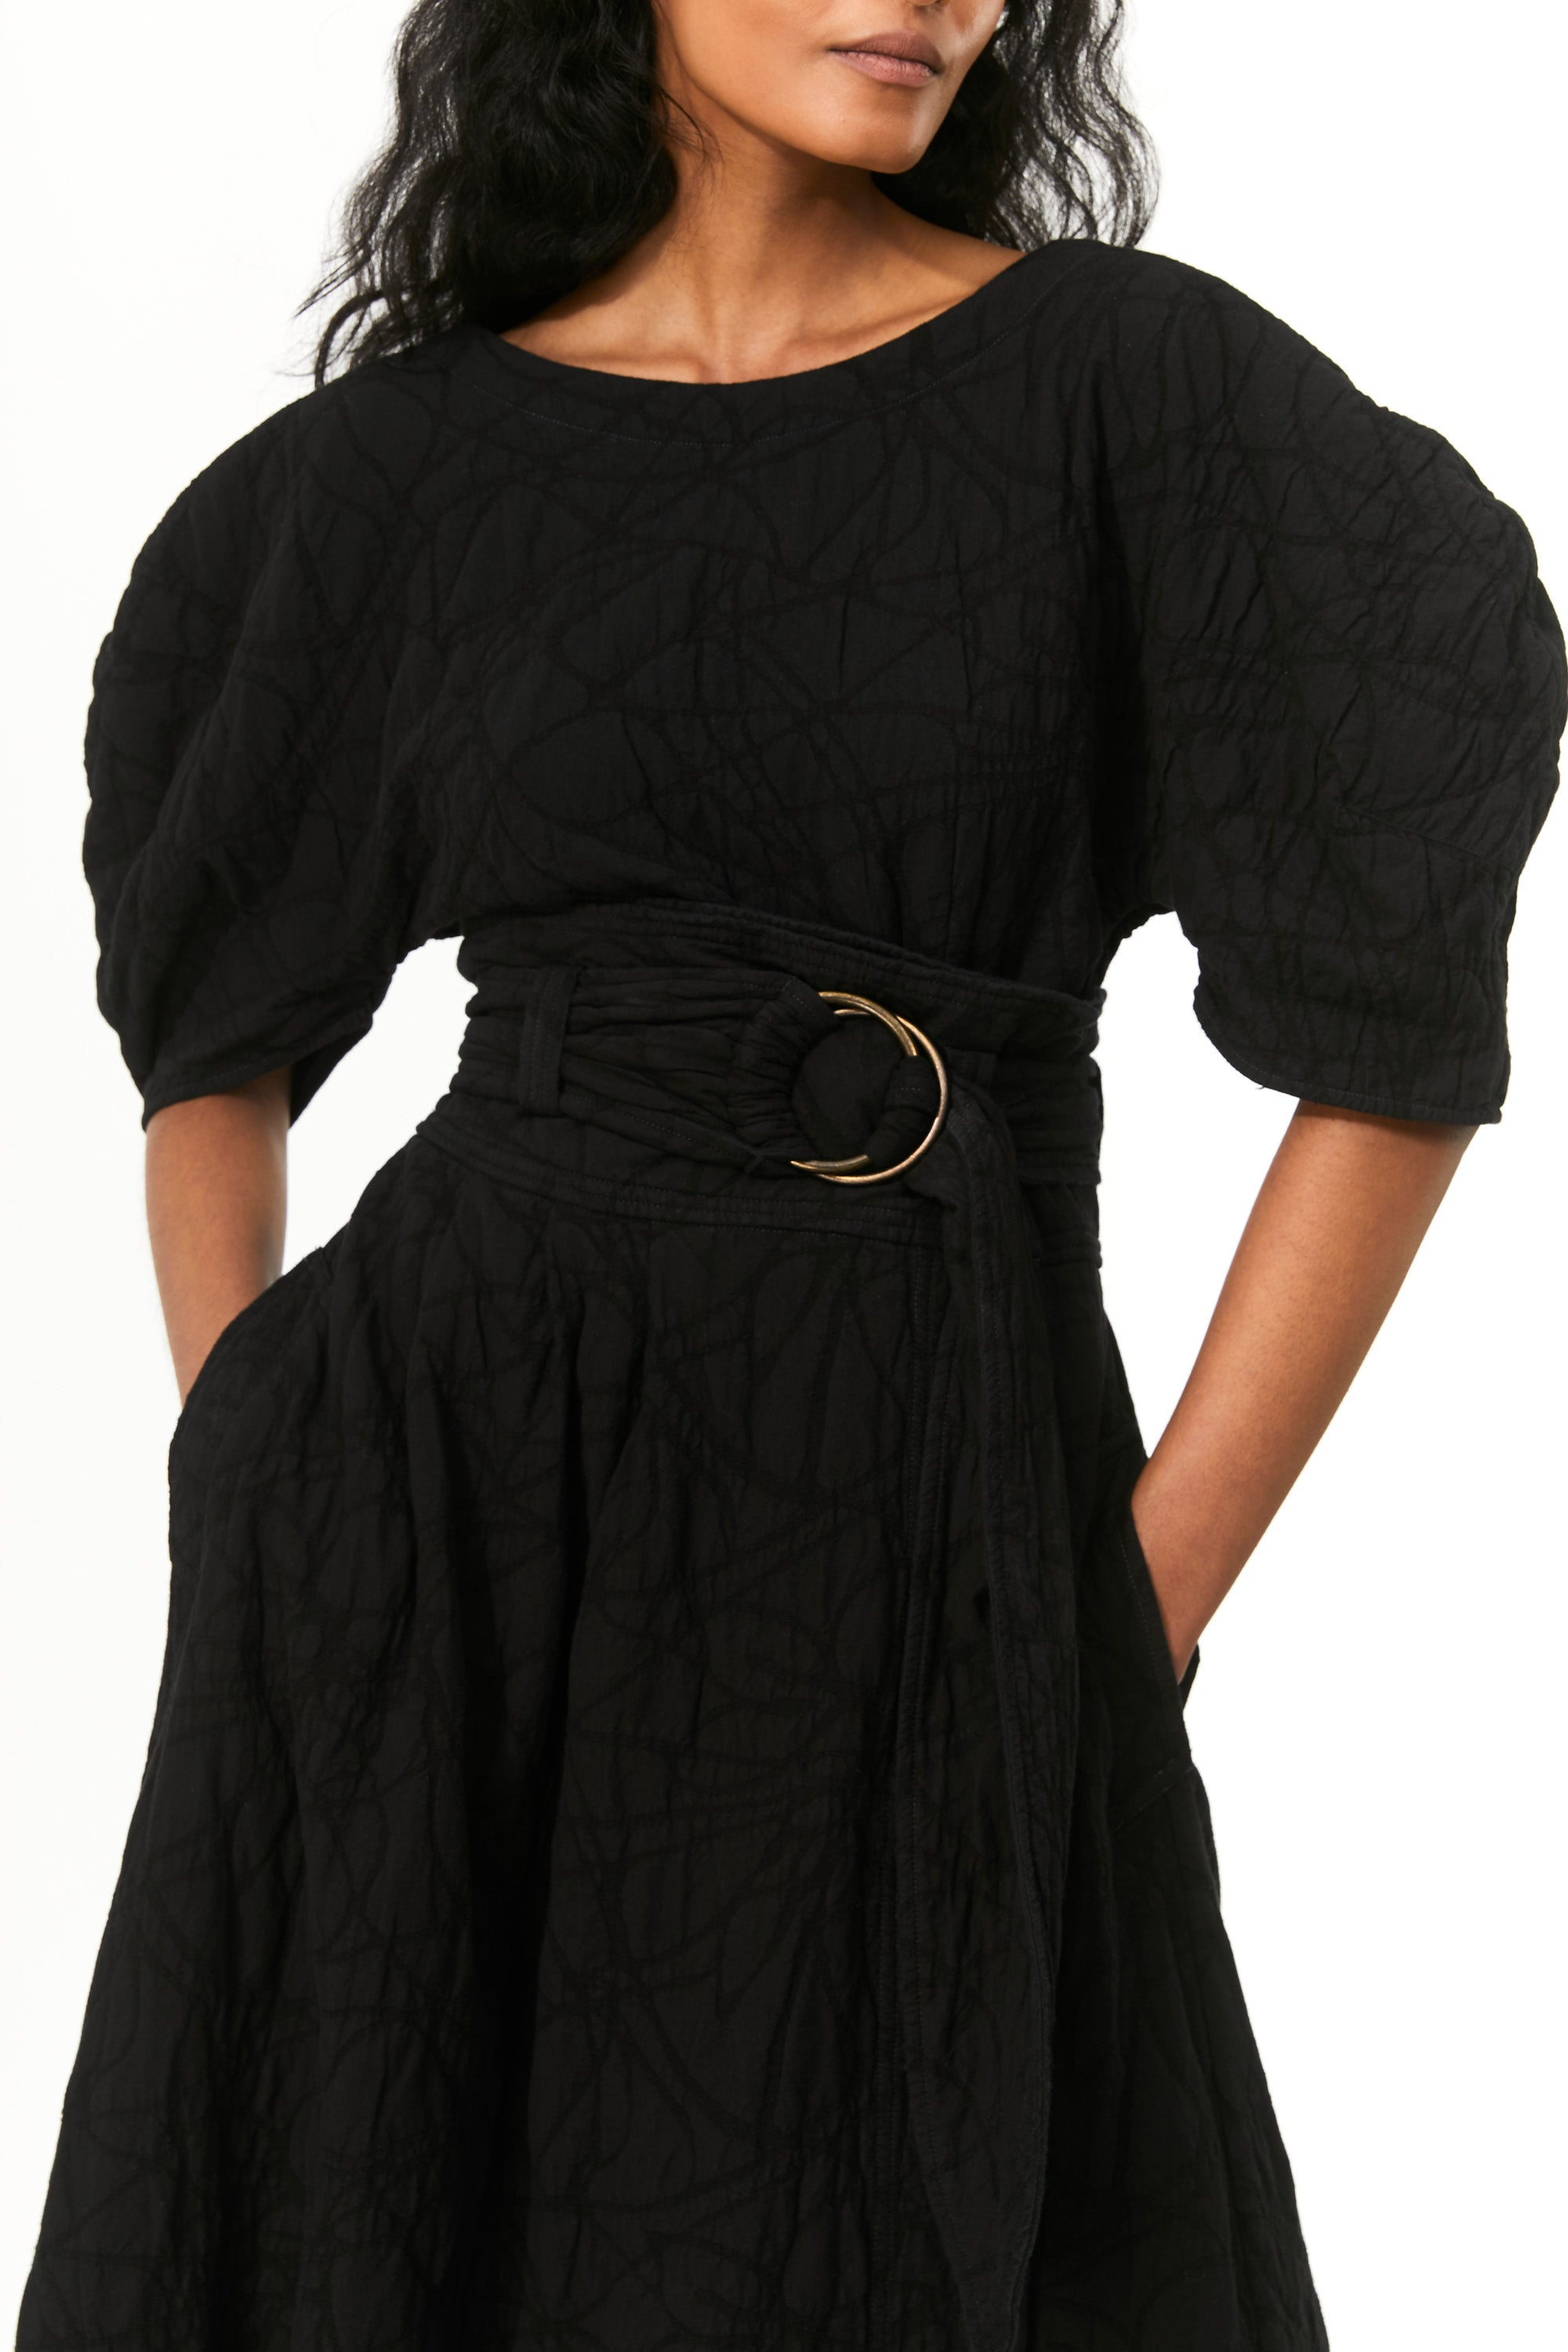 Mara Hoffman Black Esperanza Skirt in overdye organic cotton and linen (belt detail)